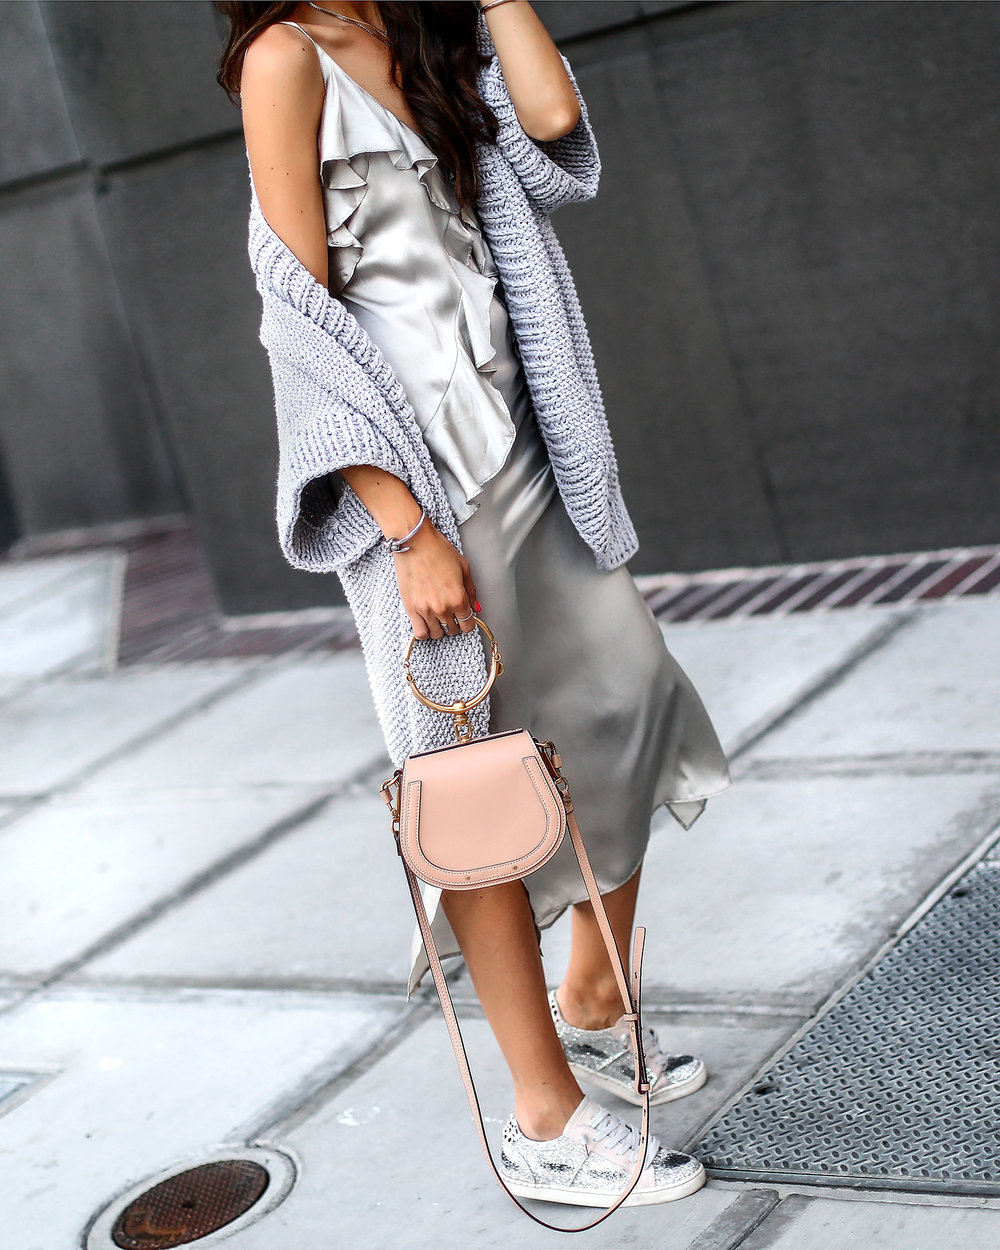 MLM_the_Label_Ruffle_Dress_I_Love_Mister_Mittens_KImono_Sweater_Dolce_Vita_Sneakers_Chloe_Nile_Bag.jpg